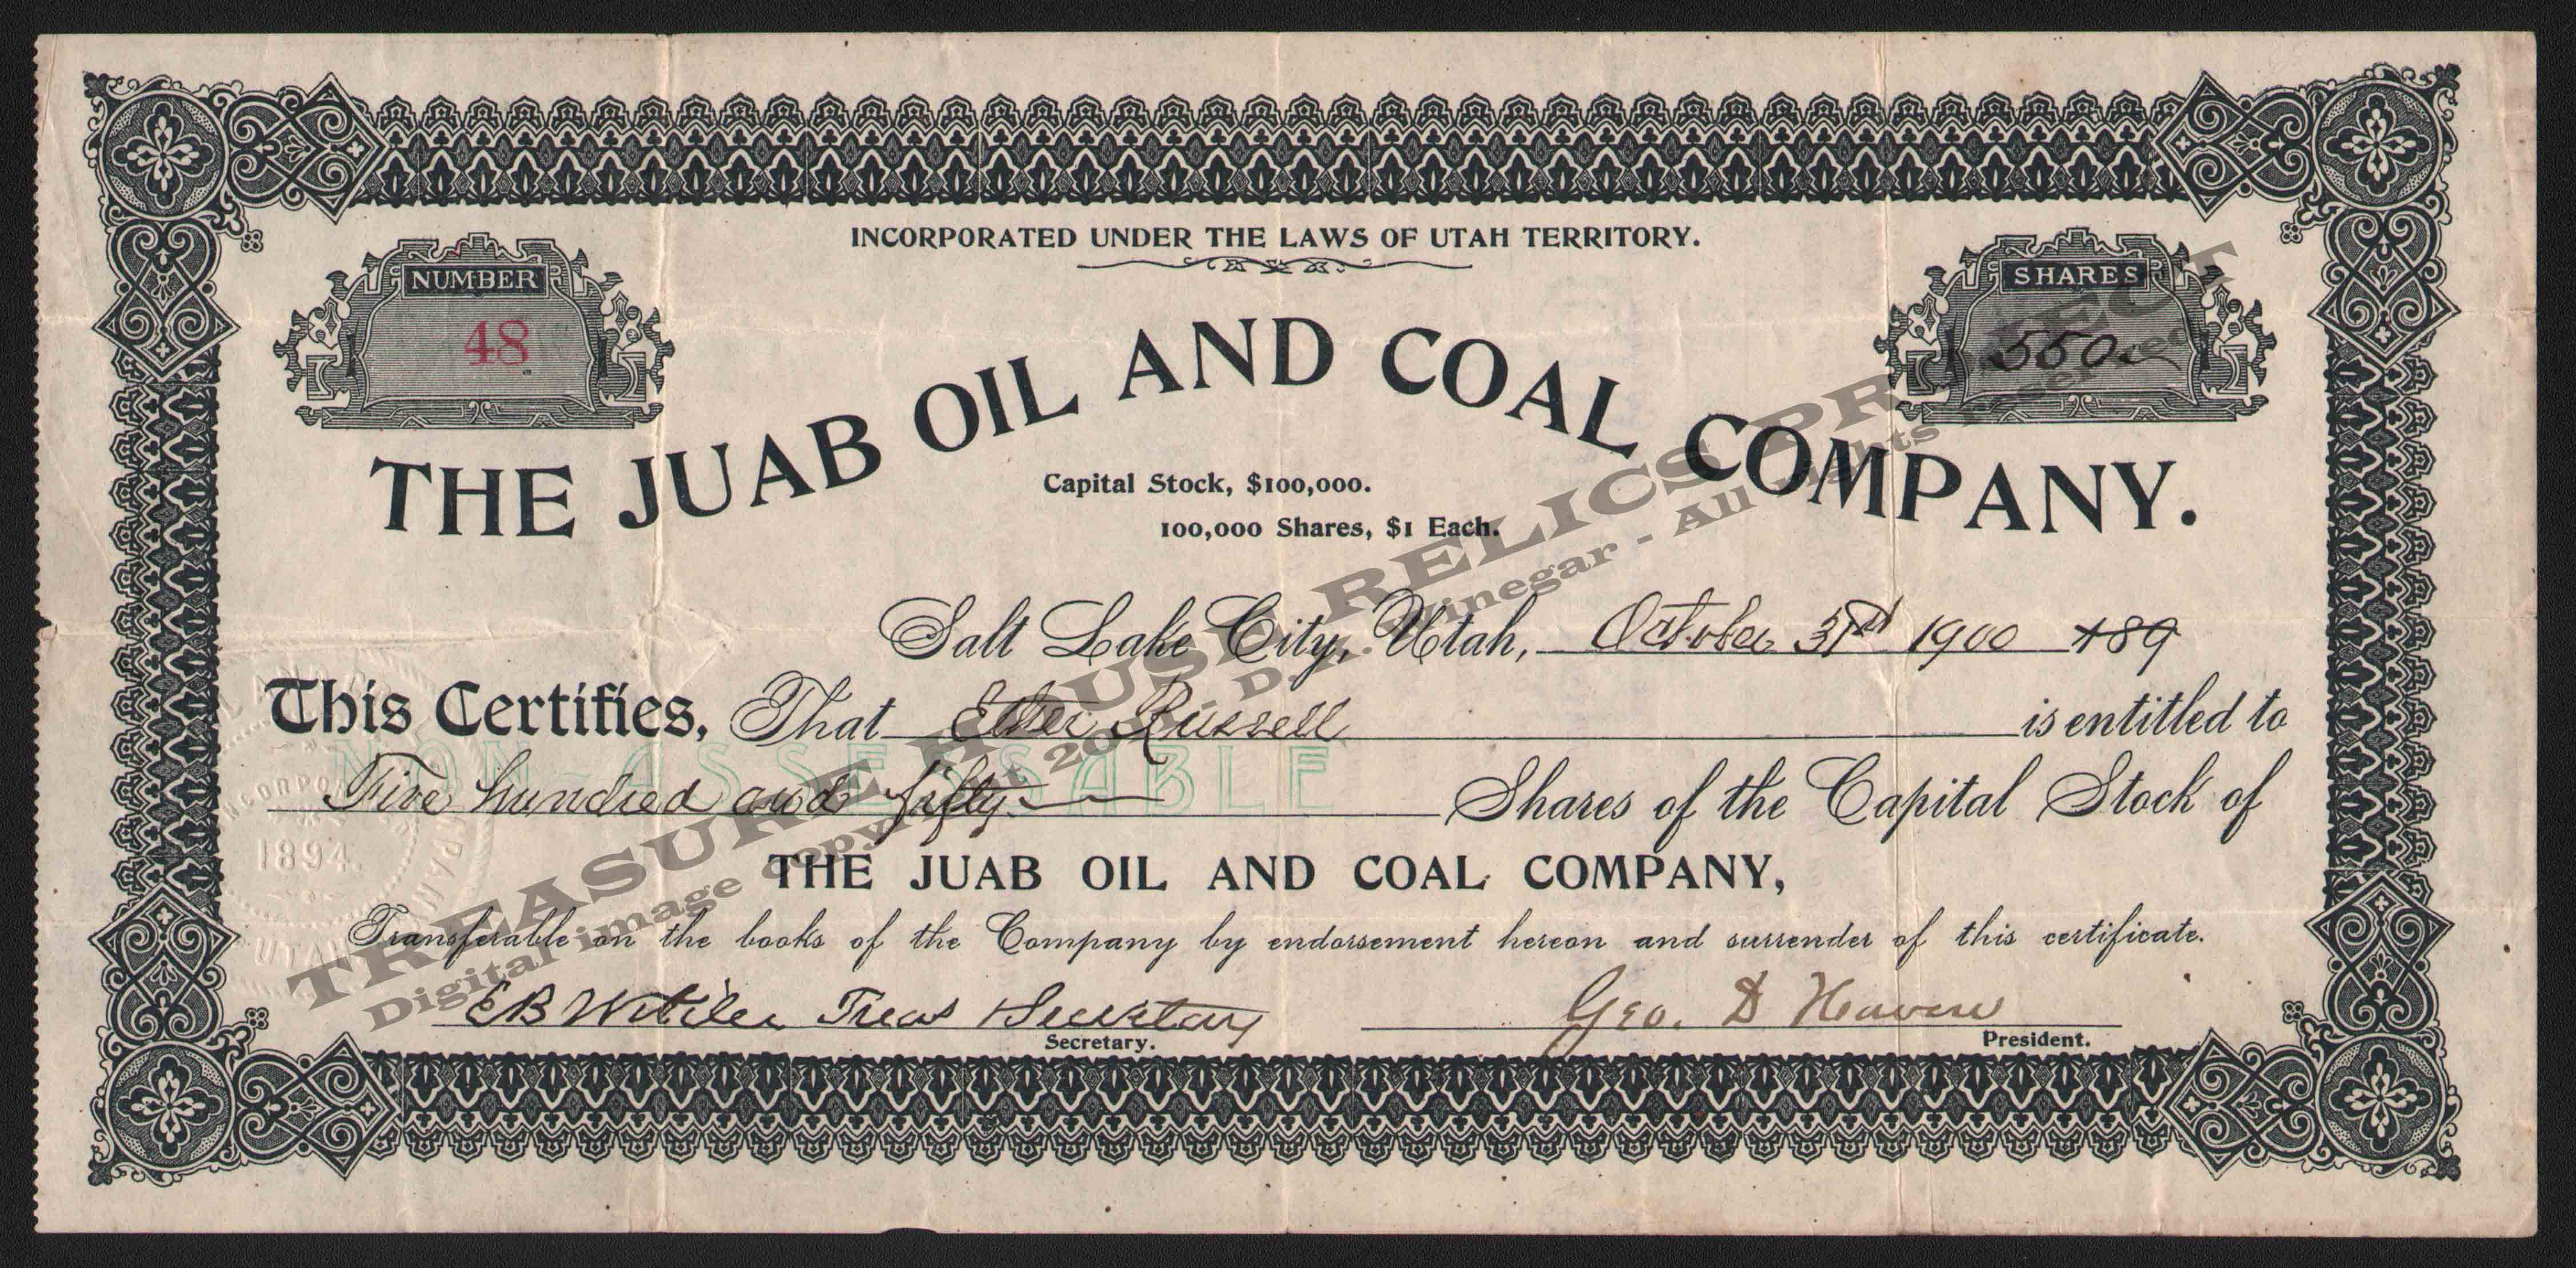 JUAB_OIL_AND_COAL_COMPANY_48_1900_400_emboss.jpg